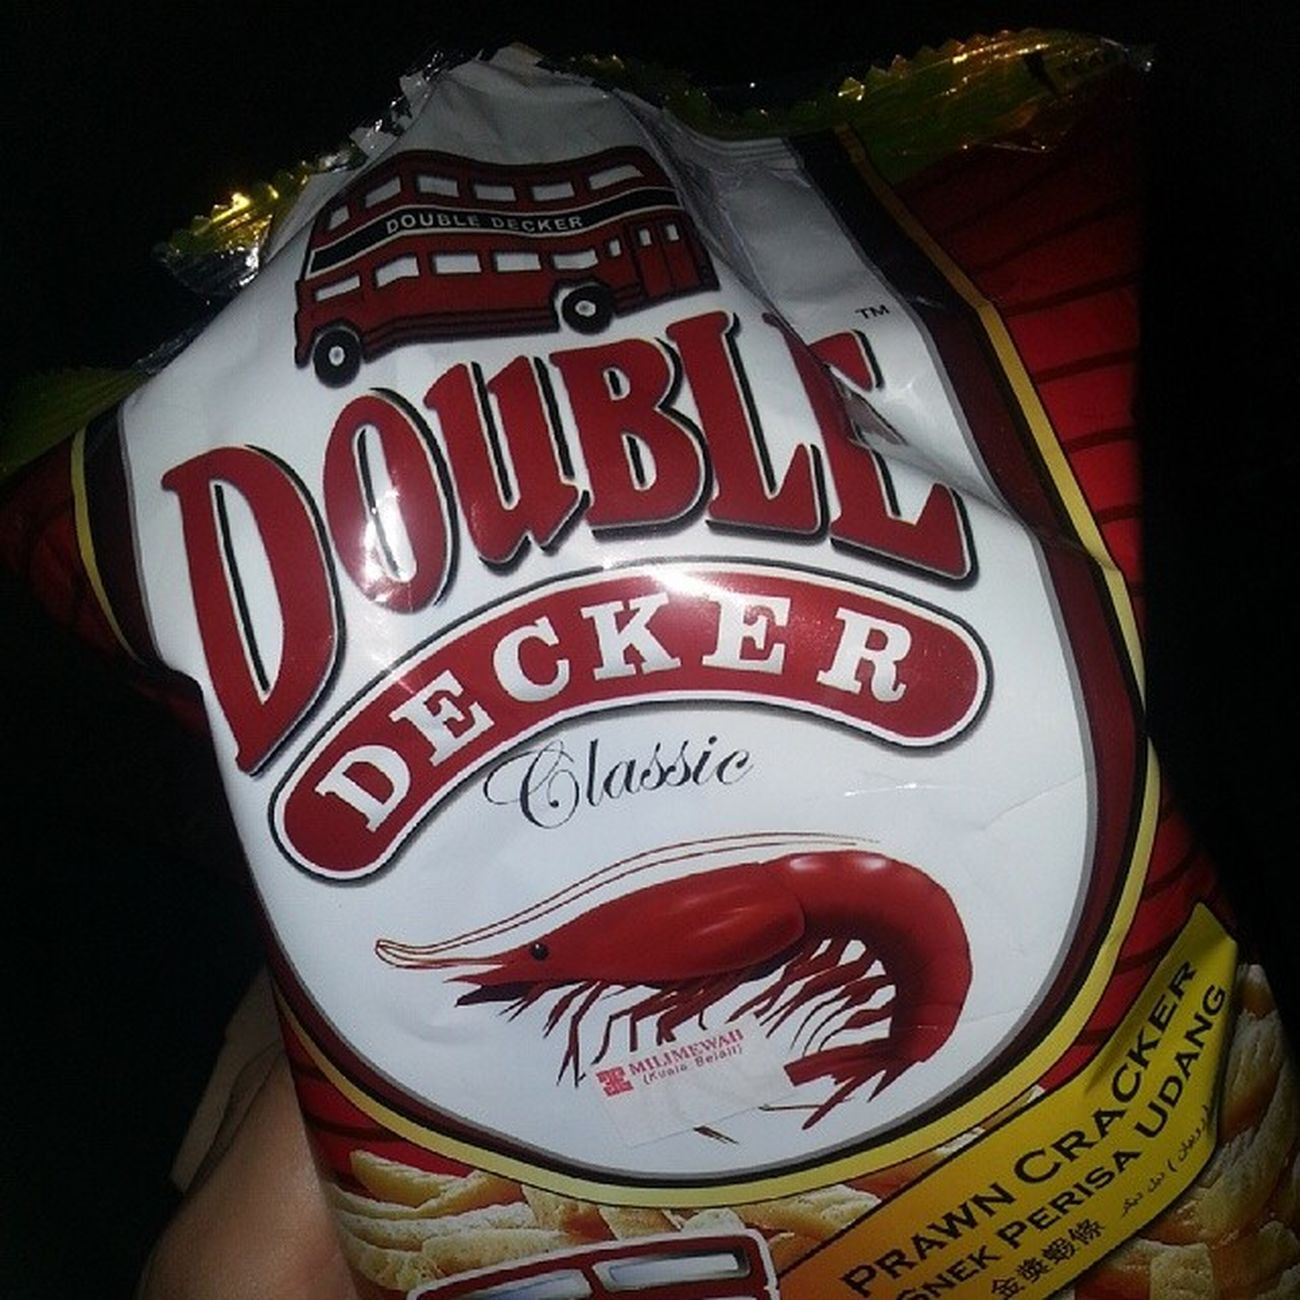 Doubledecker Snack Favourite while watching Koreanseries roomate